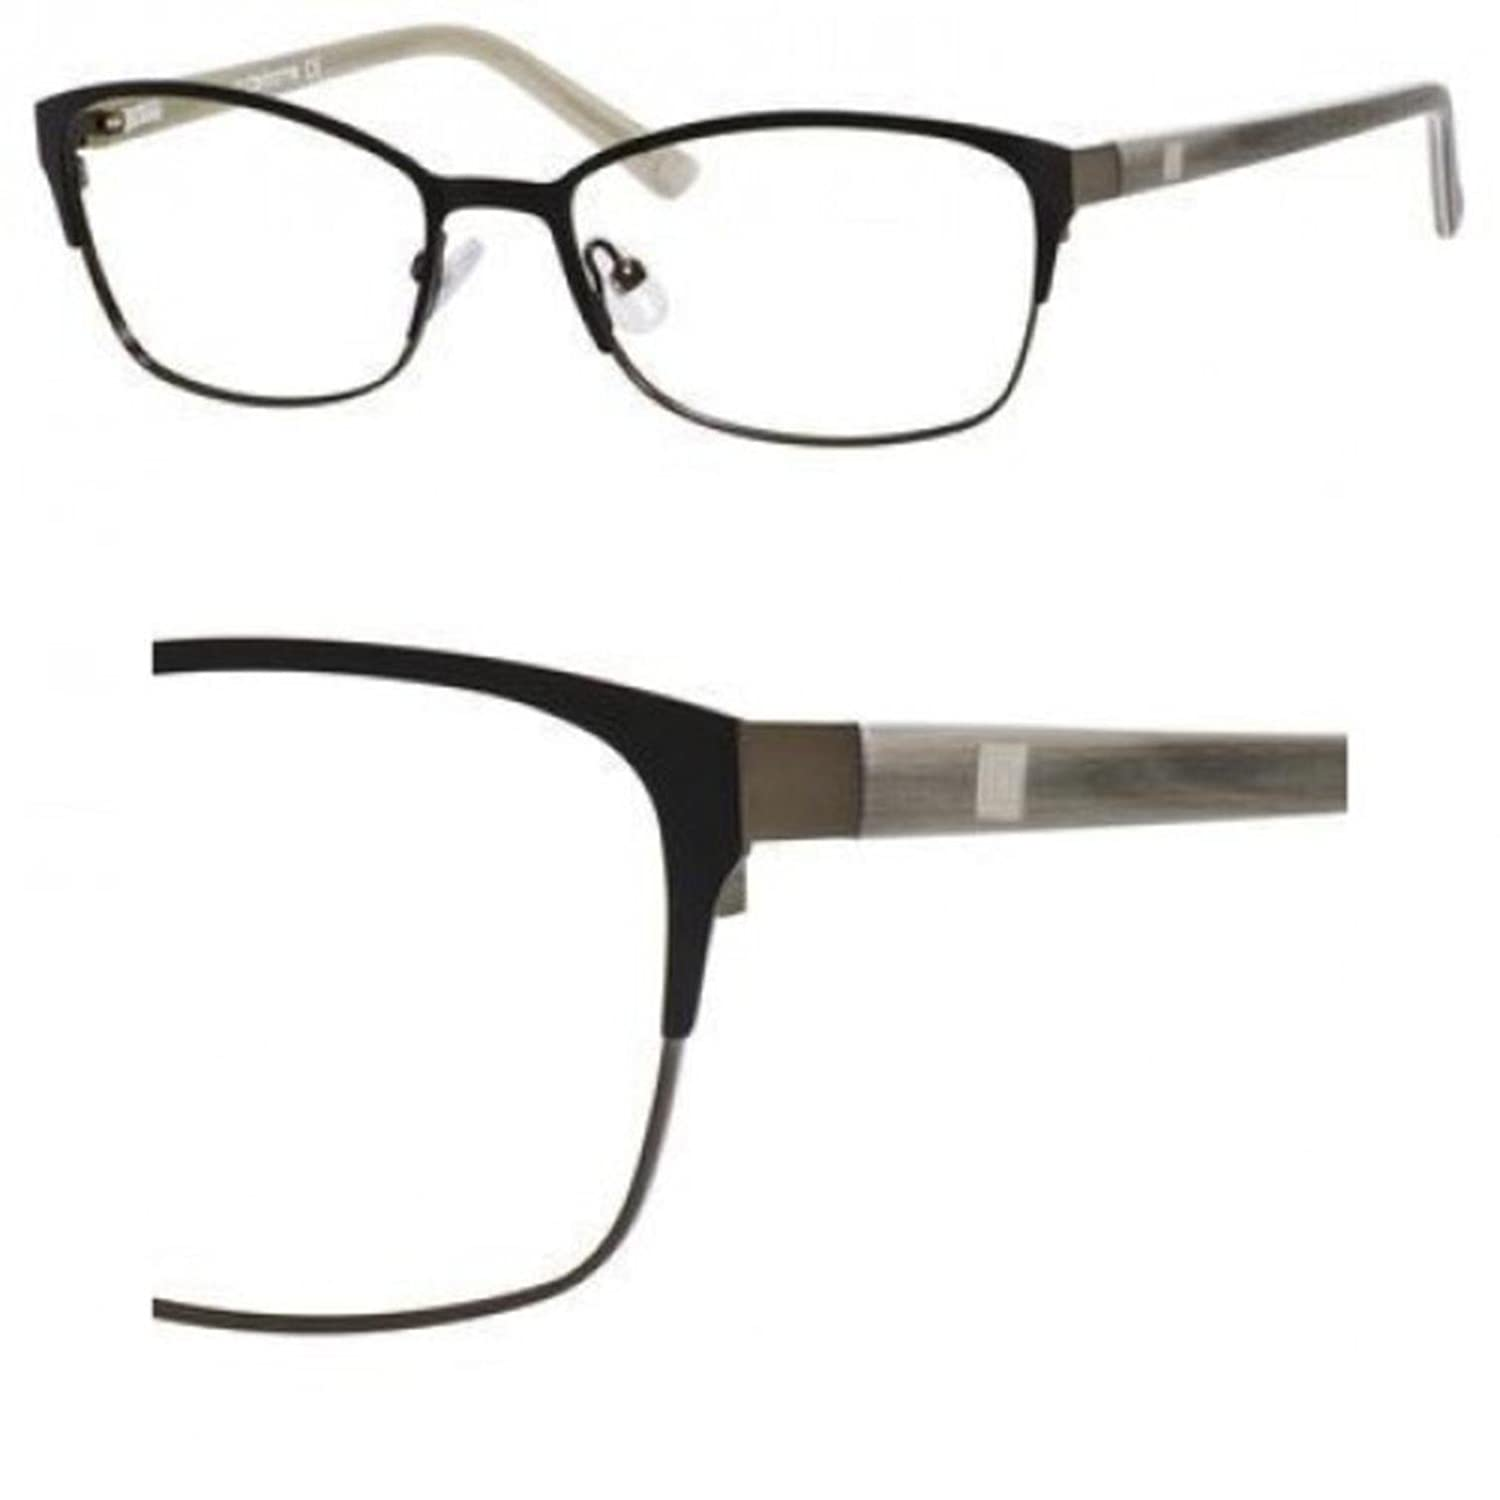 Amazon.com: LIZ CLAIBORNE Eyeglasses 605 0Ef8 Black Ruthenium 53MM ...